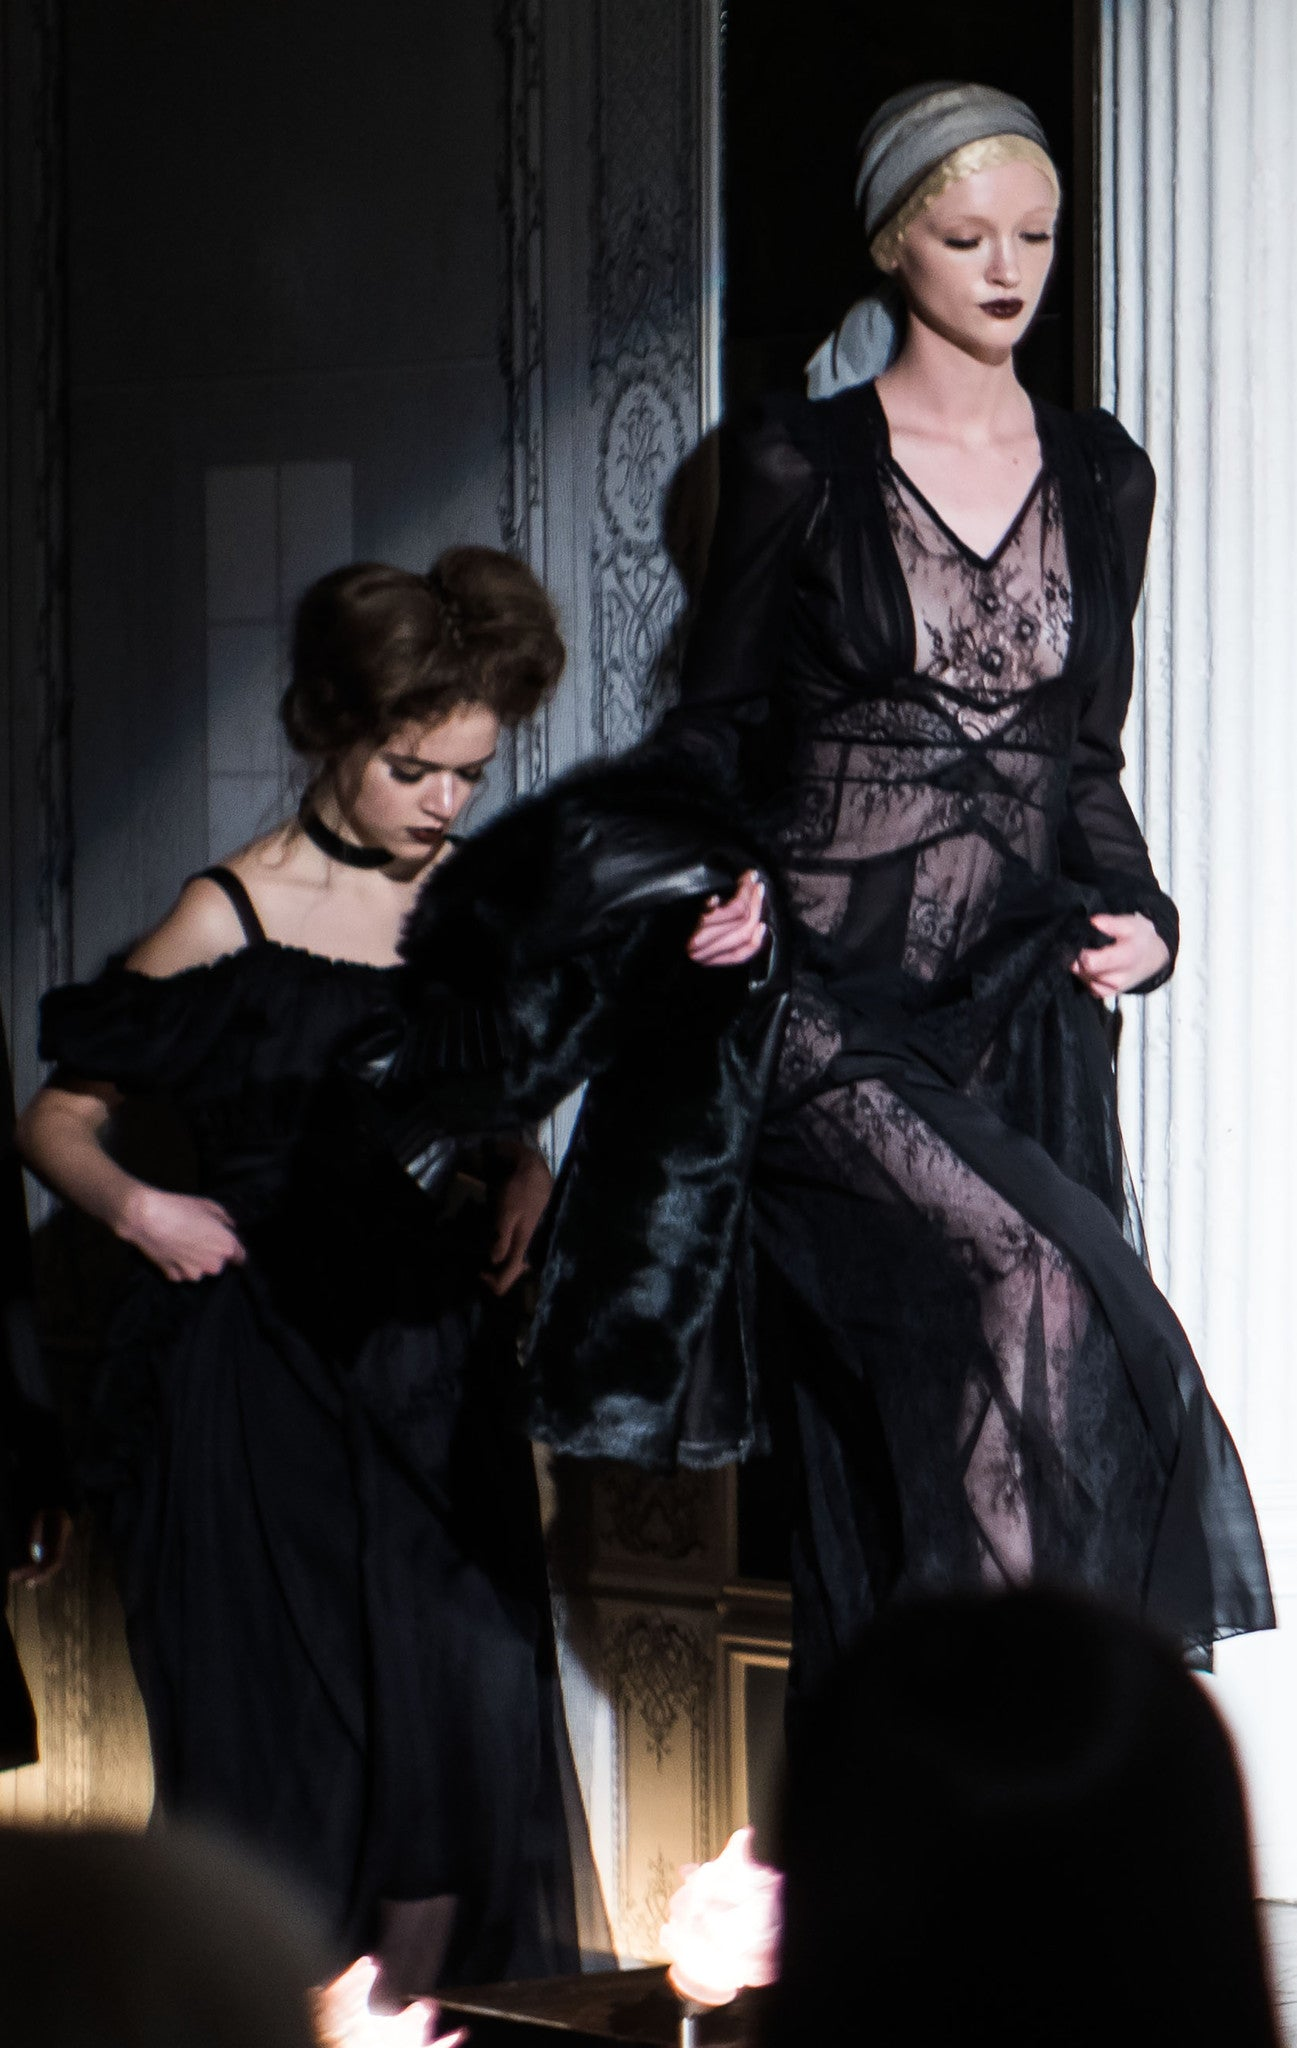 Black French Solstiss Lace Lover Dress Jung Wendy Nichol Clothing Fashion Designer Handmade in NYC New York City AW14 Ready to Wear Fashion Runway Show Custom Tailoring Made to Measure Made to Order Long Sleeve Sheer cut out panels lace dress Morticia Vampire Dracula Goth Gothic Vintage inspired Victorian Edwardian Fall Wedding Winter Bride